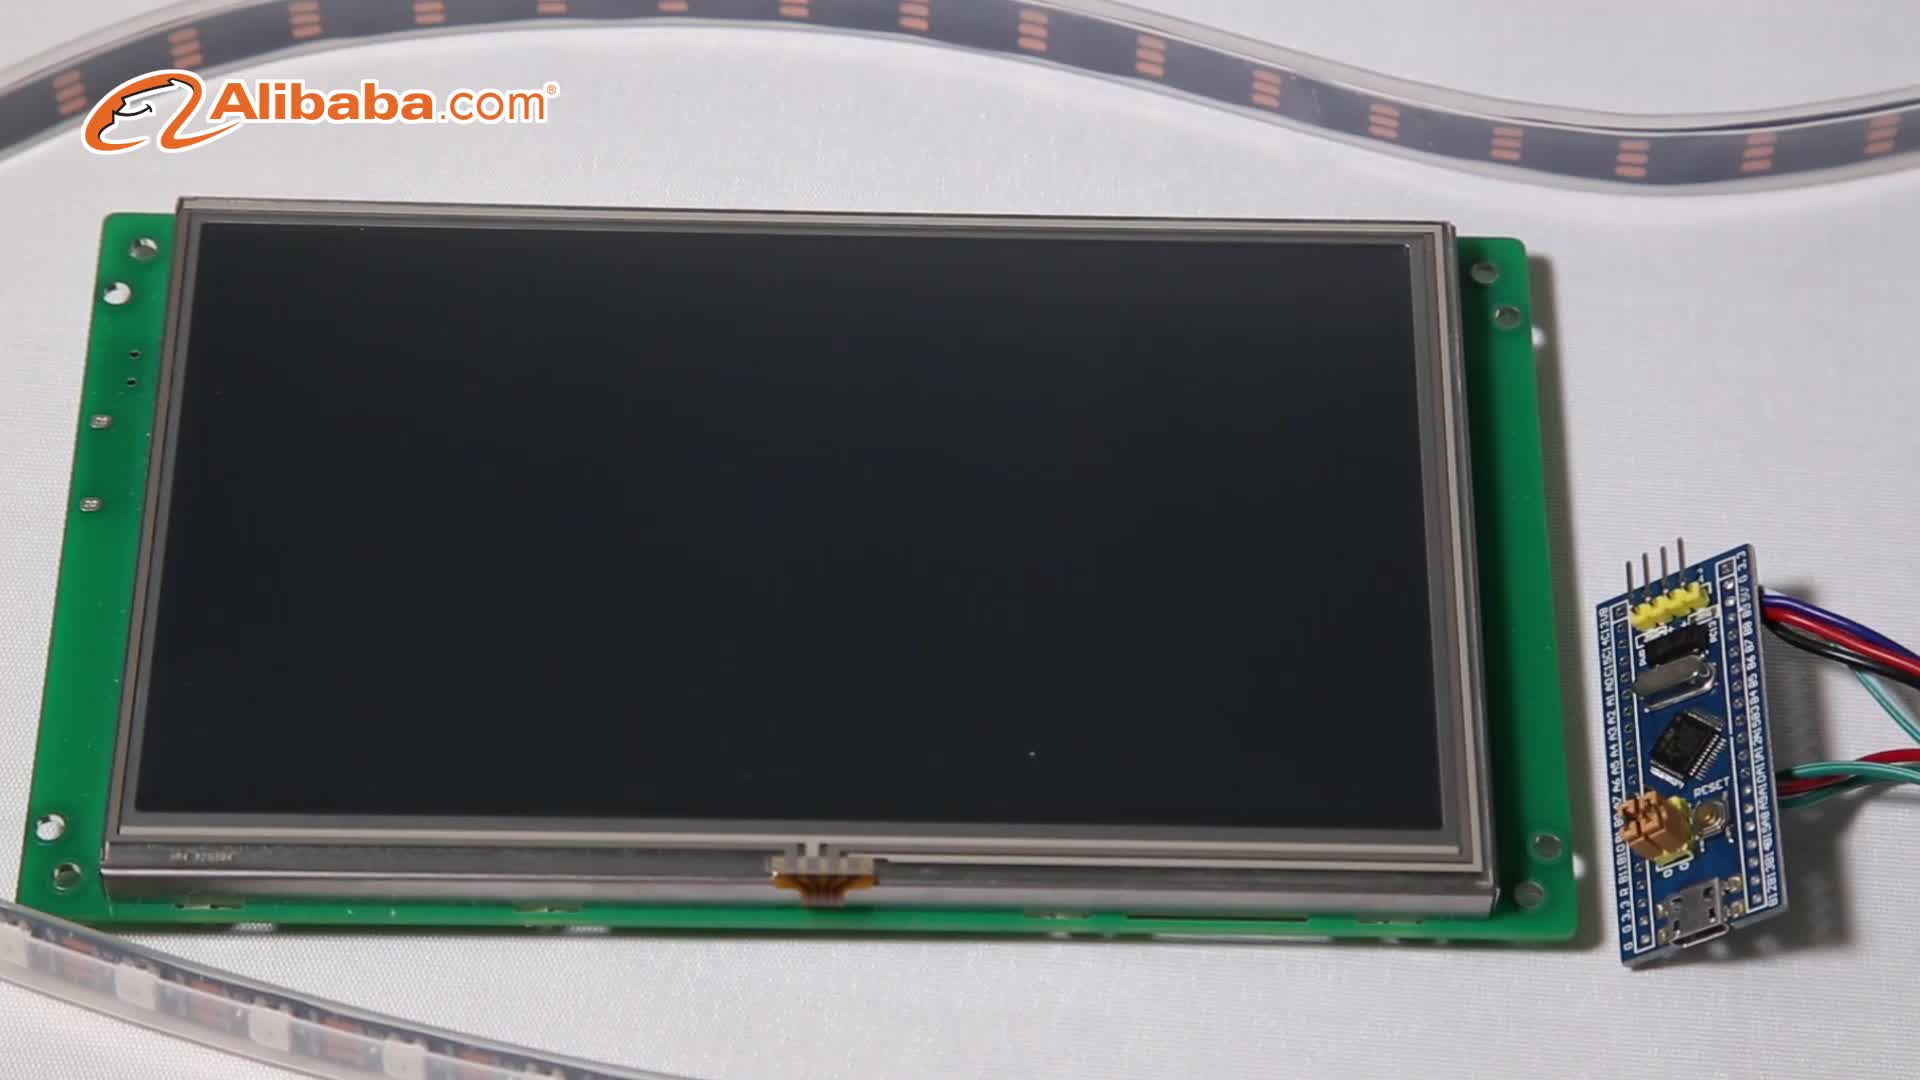 Serial interface 3.5 inch HMI touch screen display monitor terminal